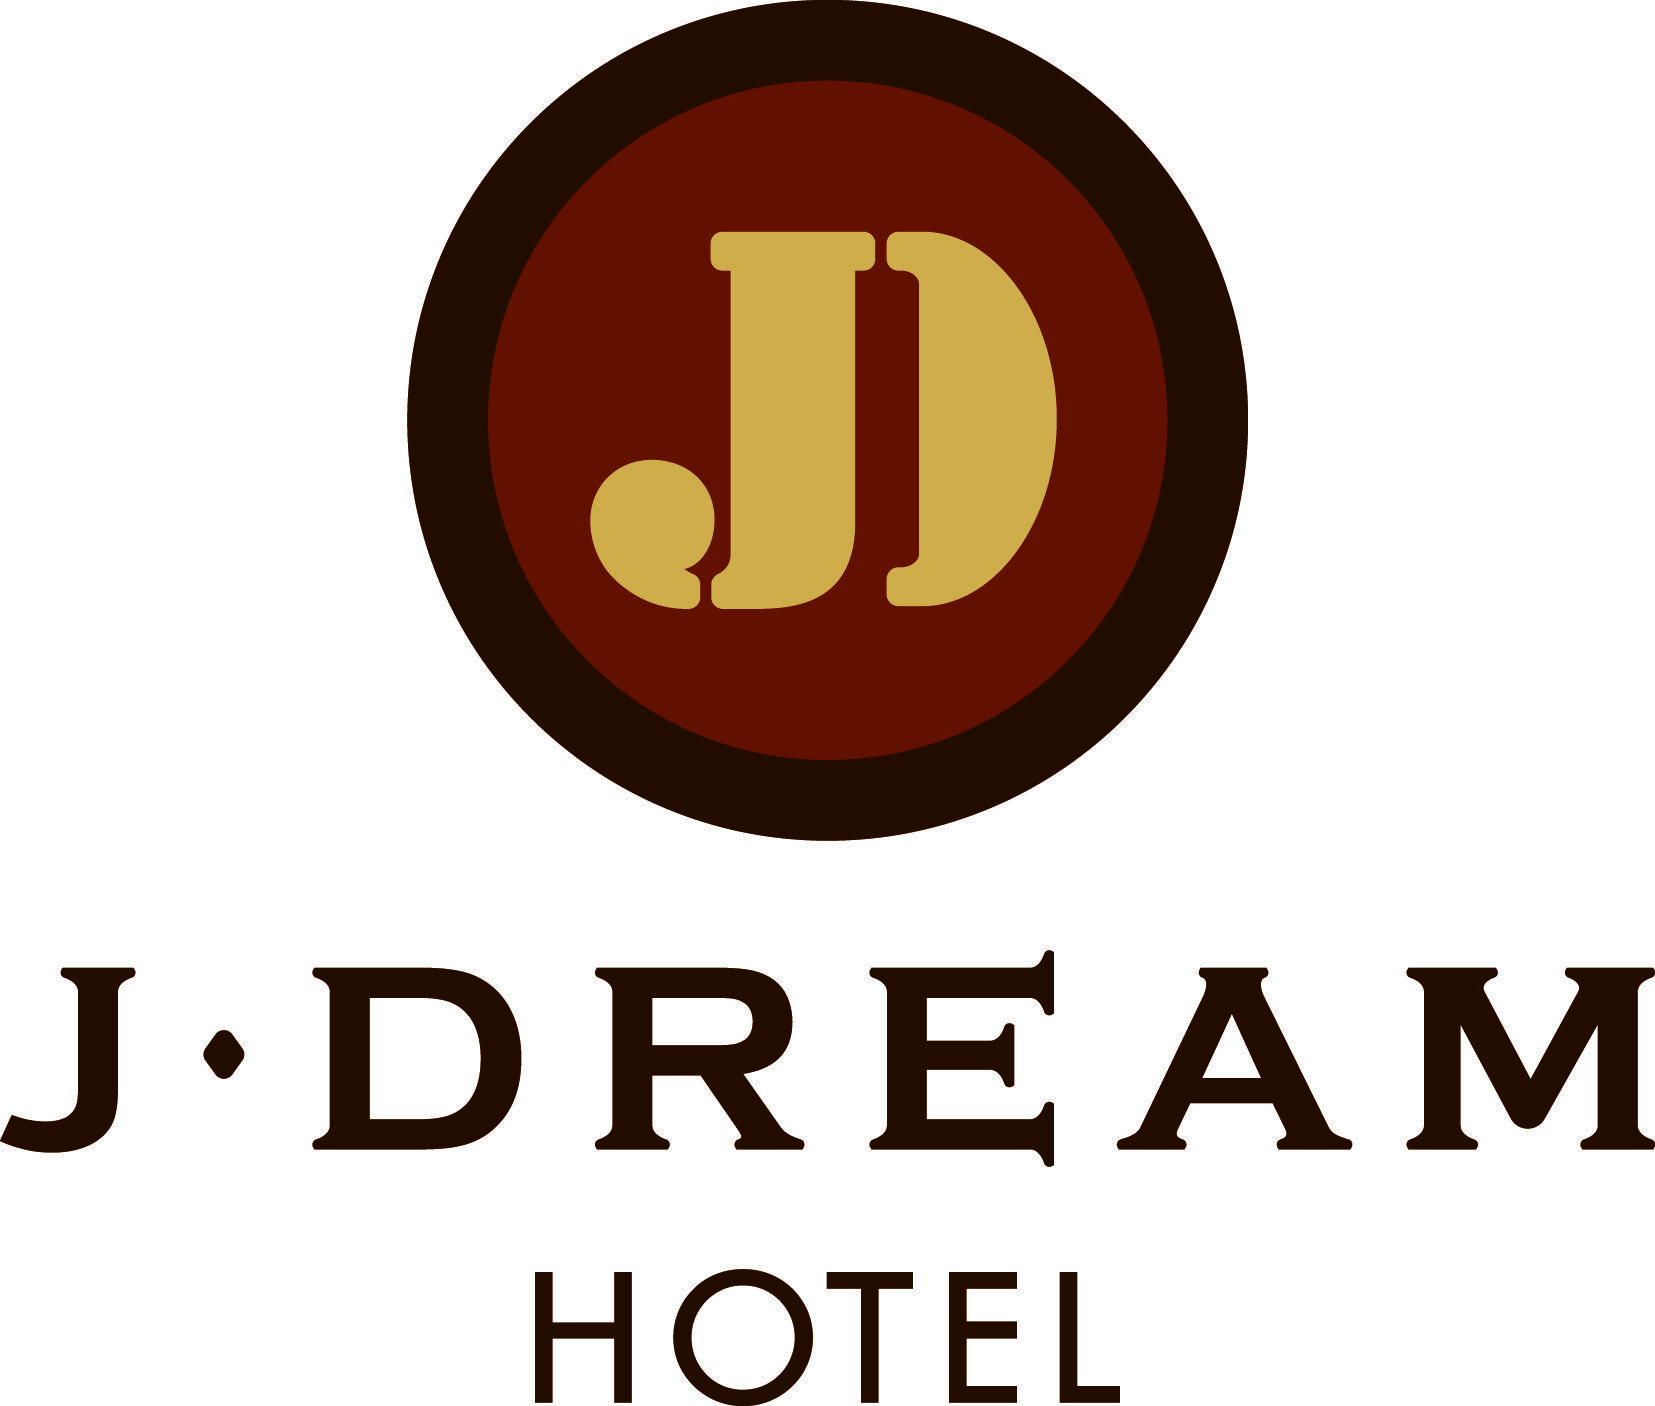 Floral Hotel - J.Dream Jeju